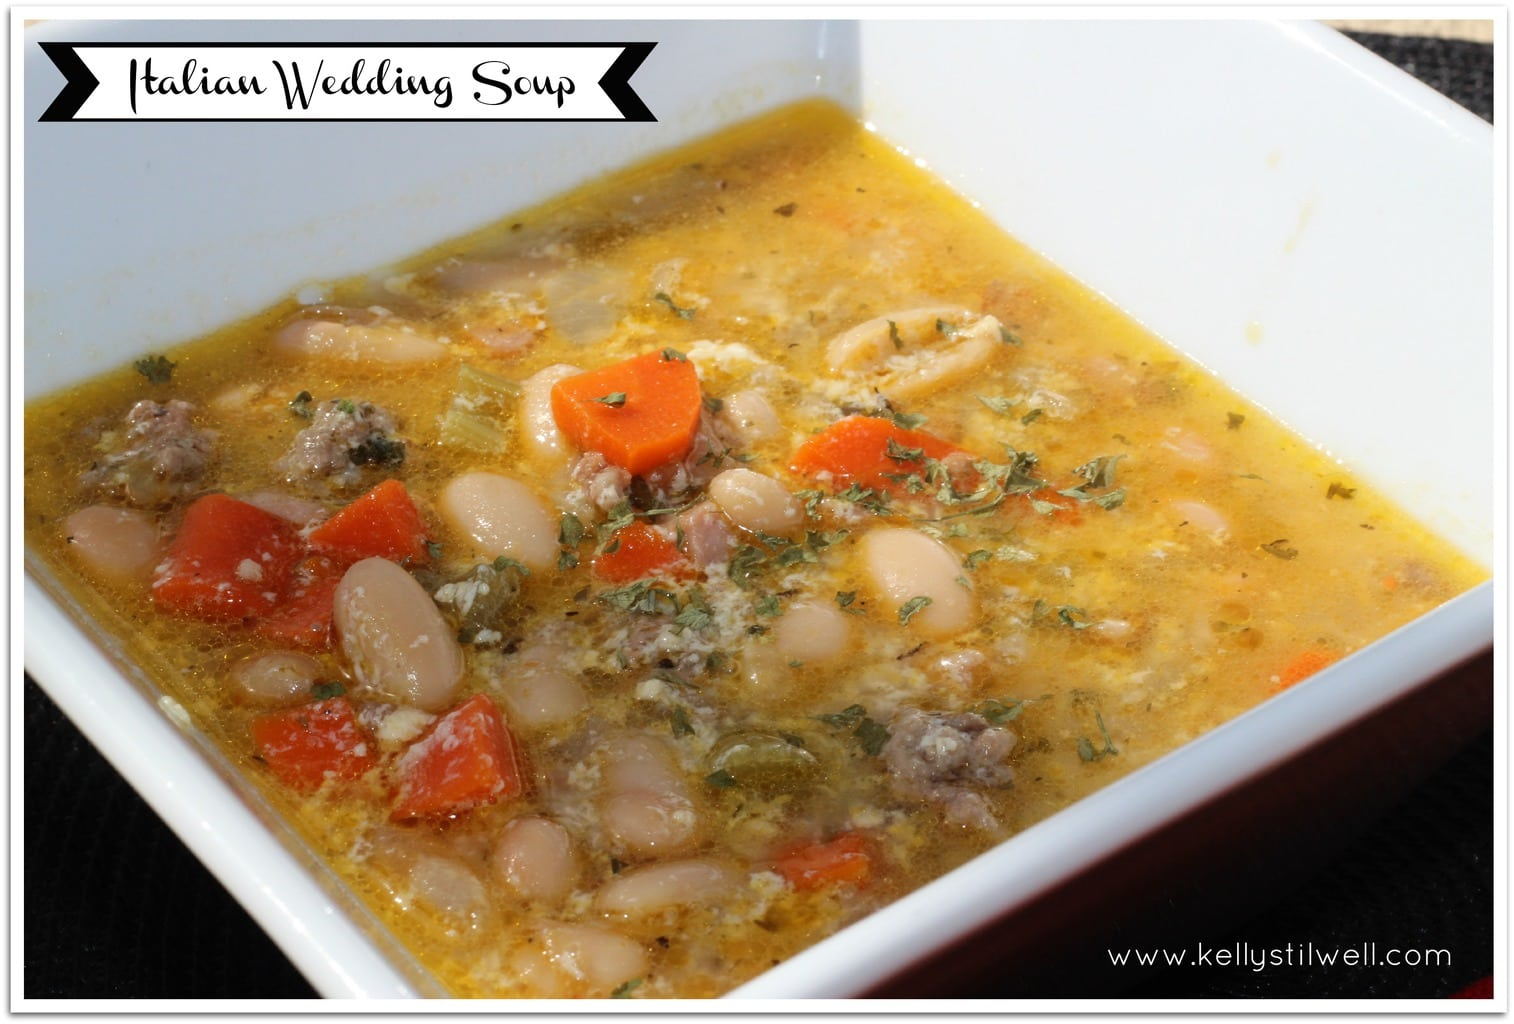 Italian Wedding Soup - Food Fun & Faraway Places